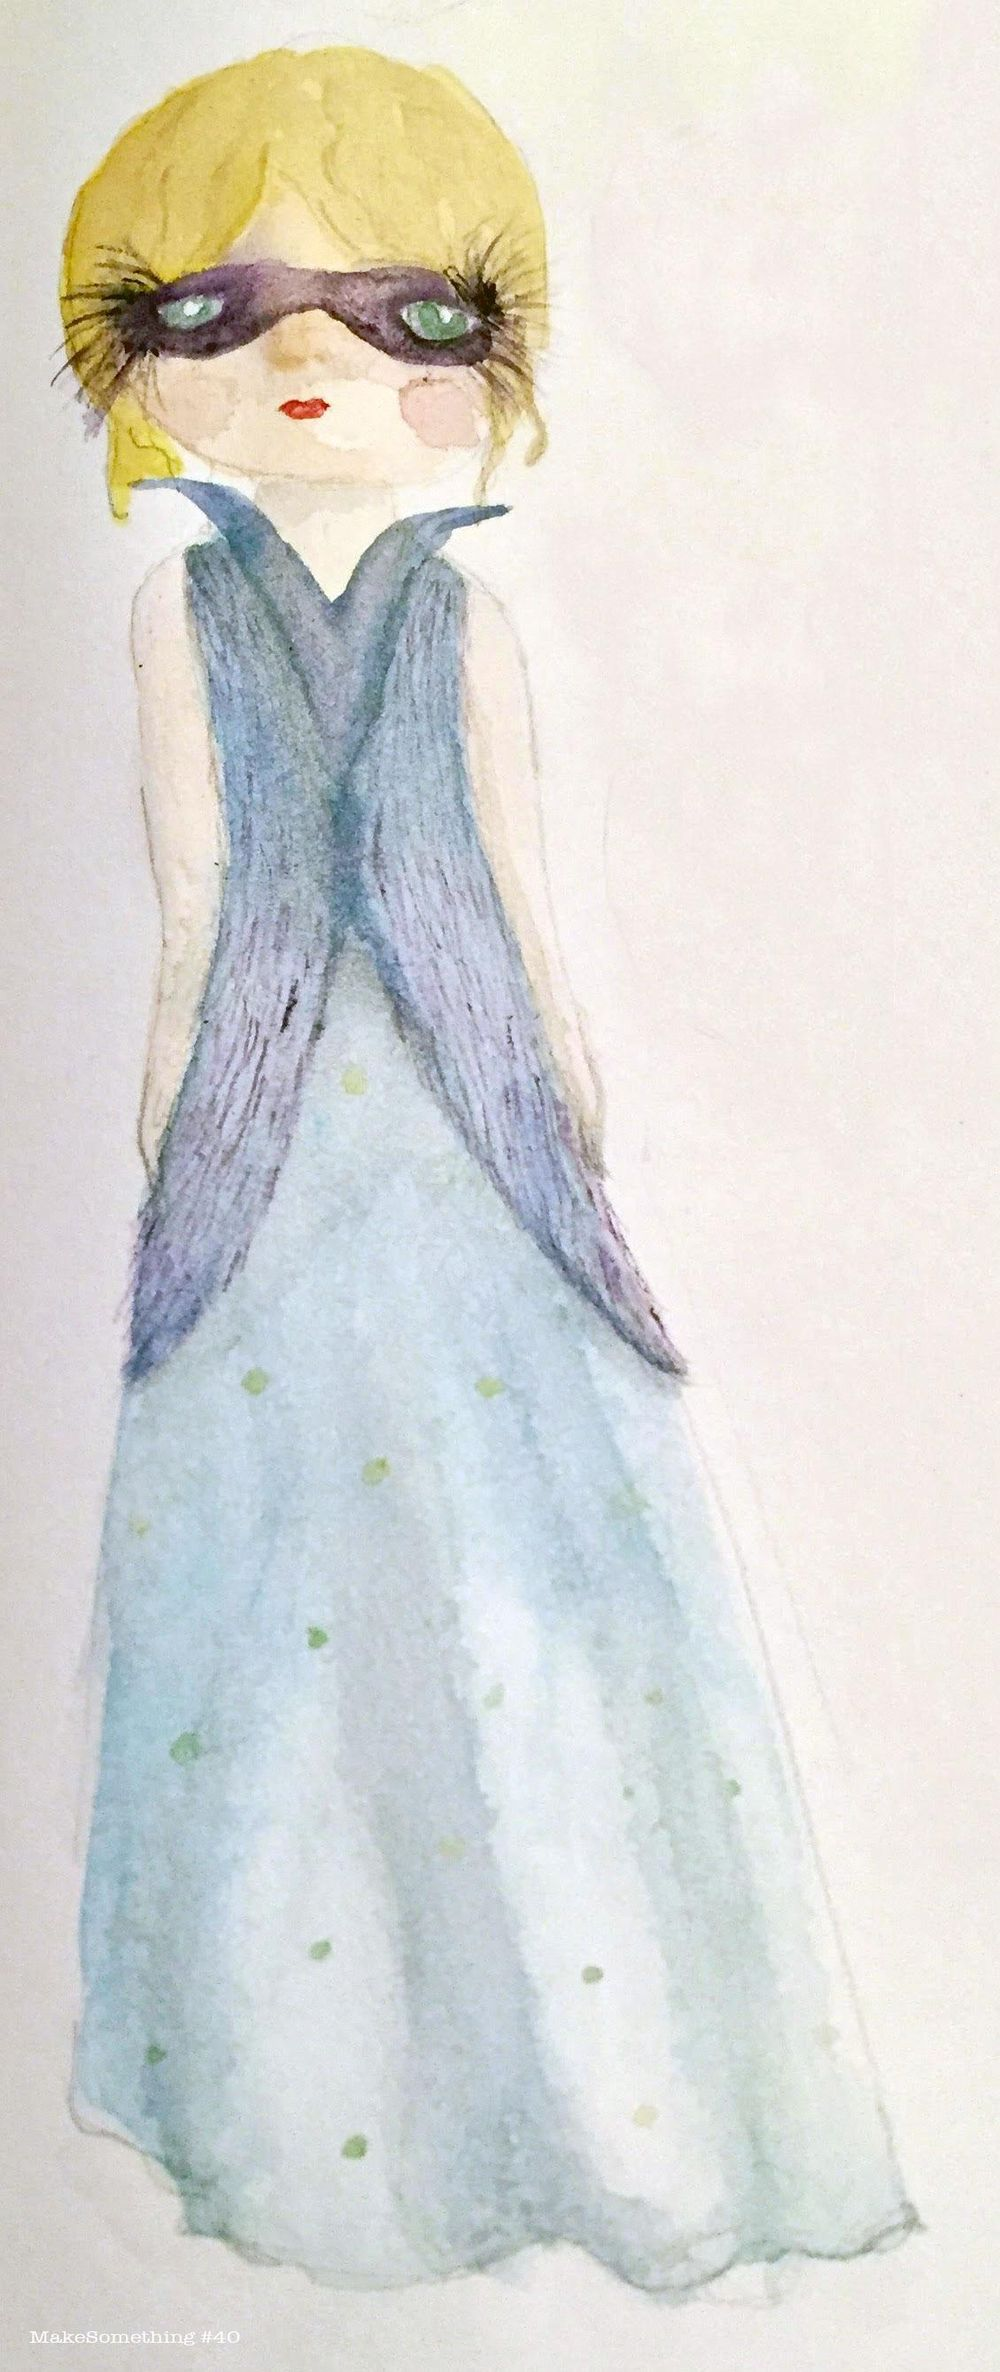 Watercolor Couture - image 1 - student project